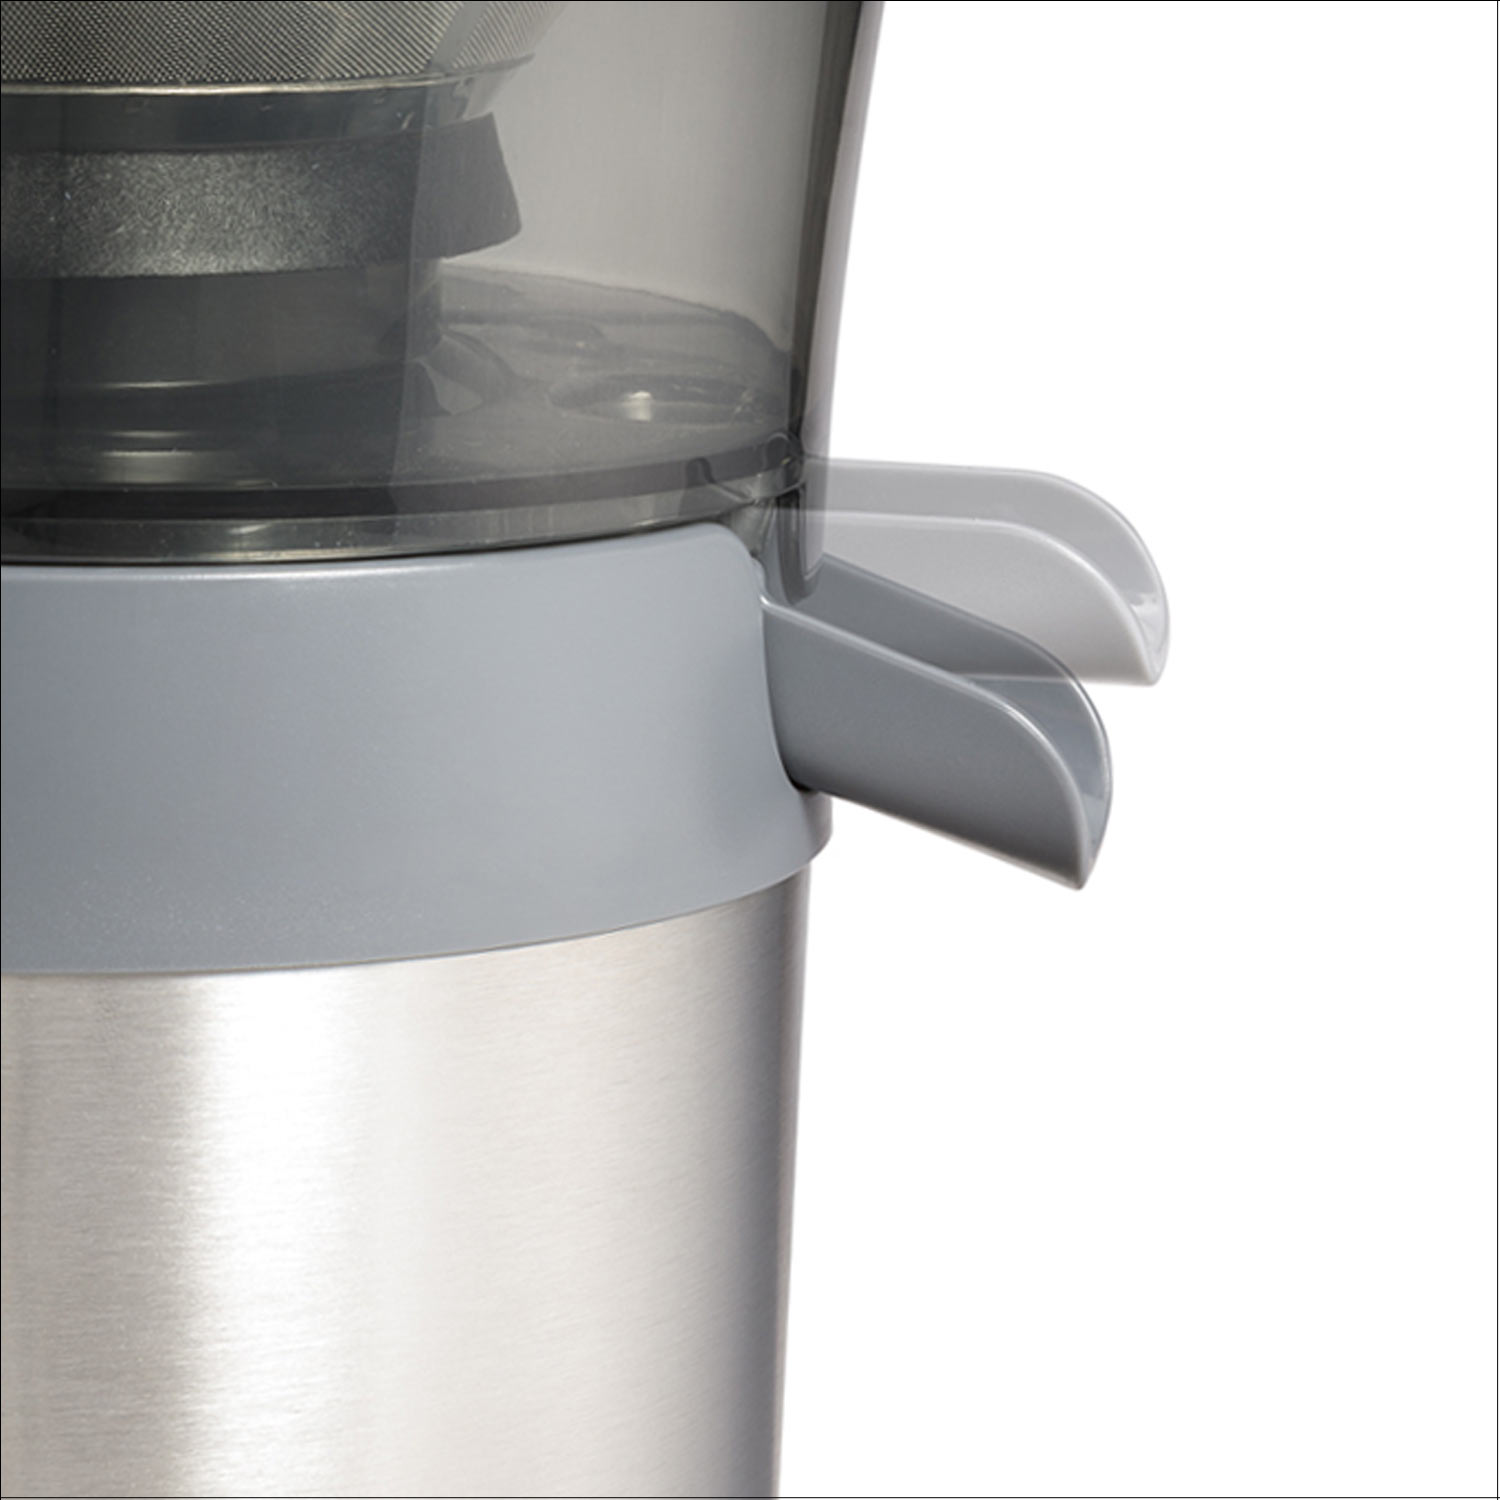 Drip-free spout keeps drips off your counter whenever you move the juice pitcher.